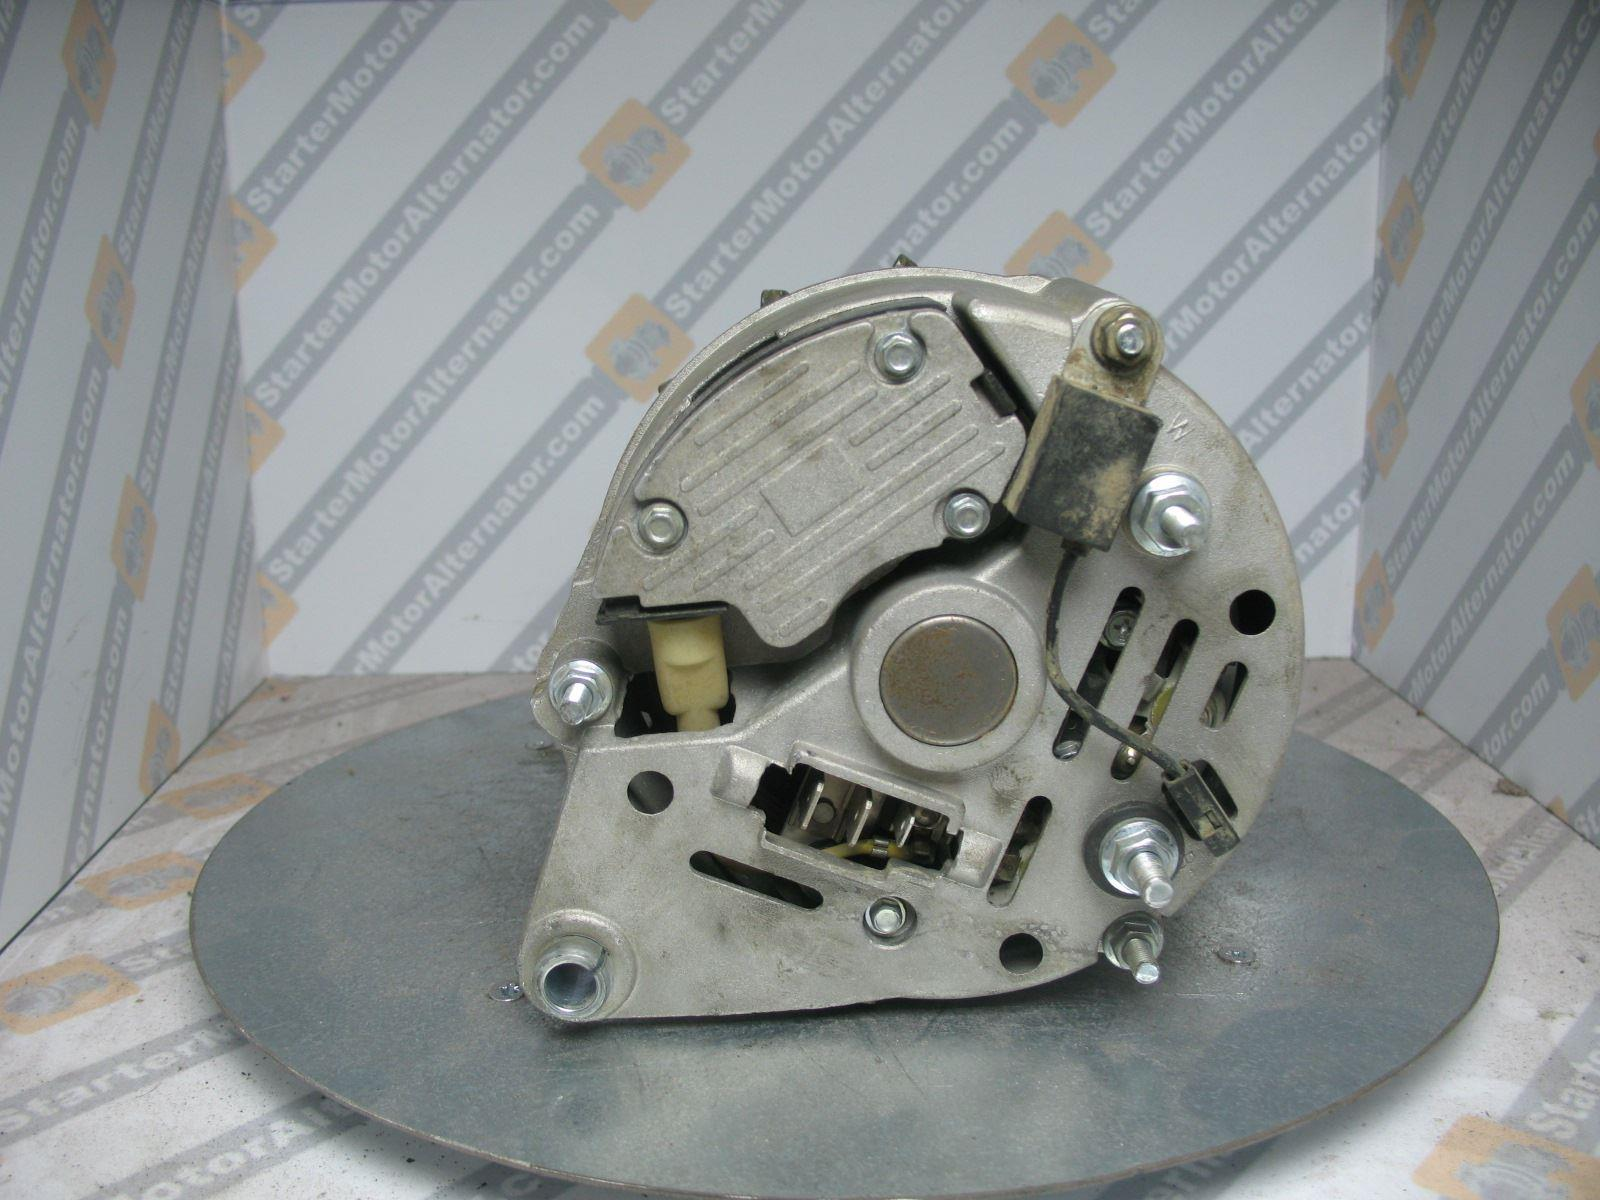 XIA3176 Alternator For BLMC Austin / Ford / Ford Truck/Tractor / JCB / LDV / Lotus / Massey Ferguson / MG / Morgan / Rover / Talbot / TVR